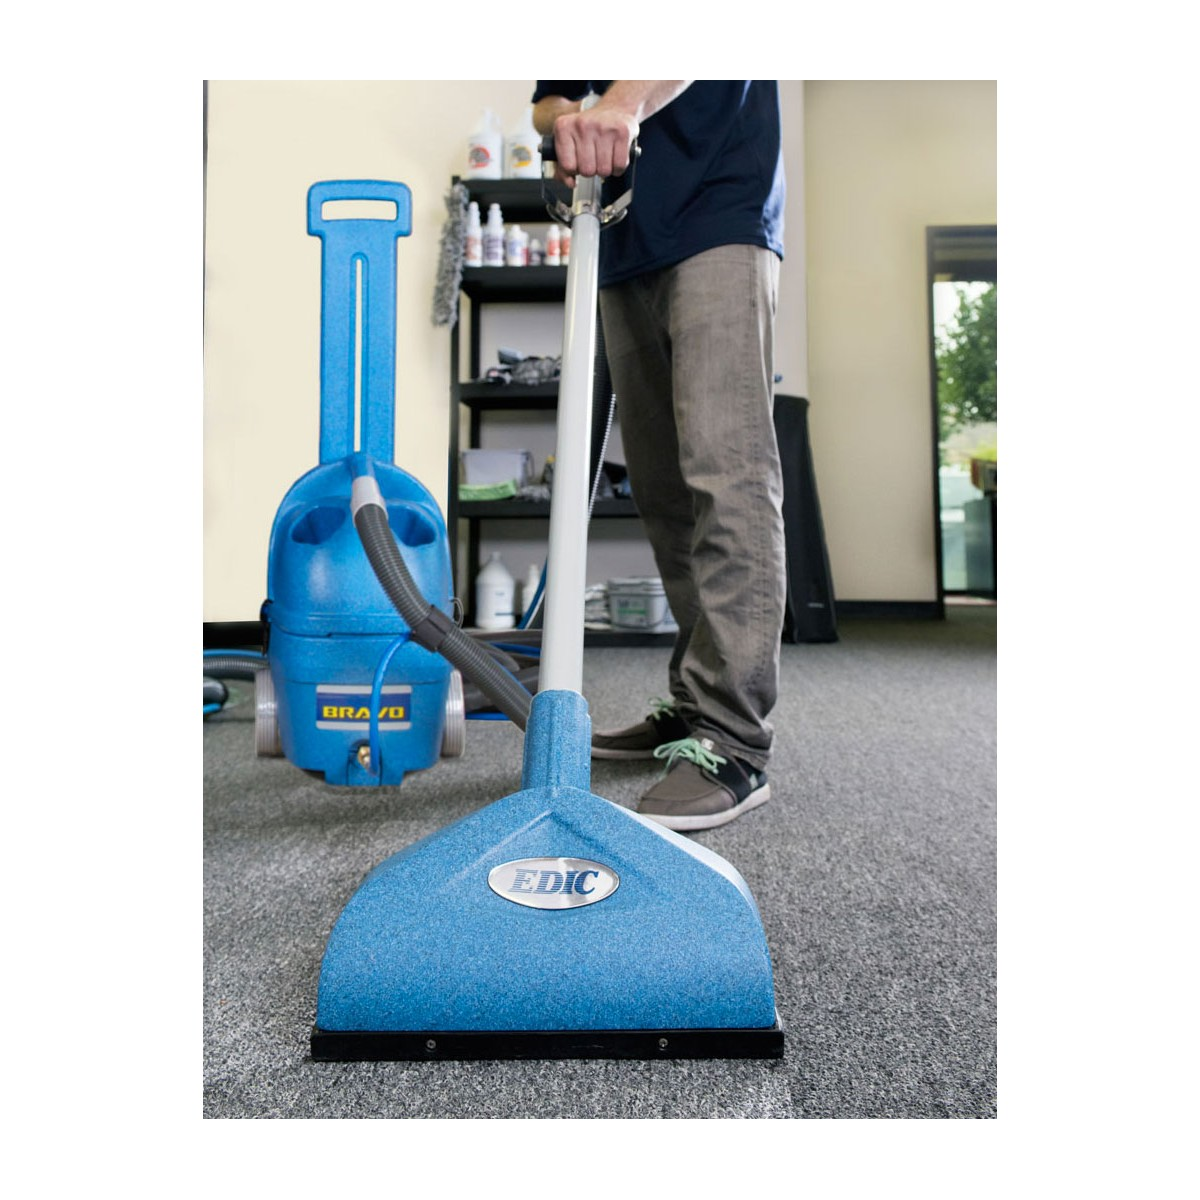 Edic Carpet Cleaning Machine Extractor All In One Carpet